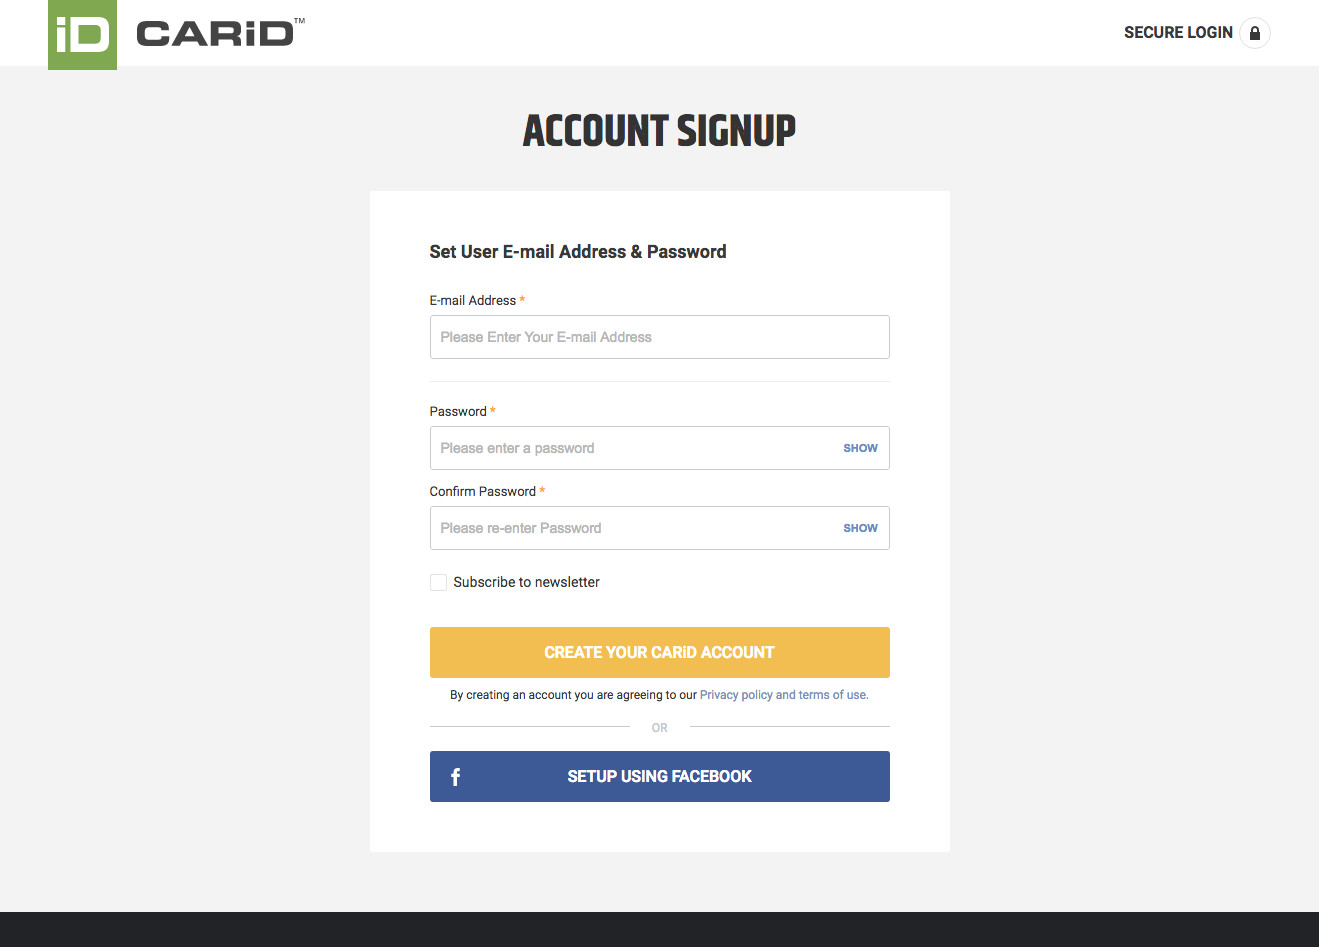 CarID's account signup page